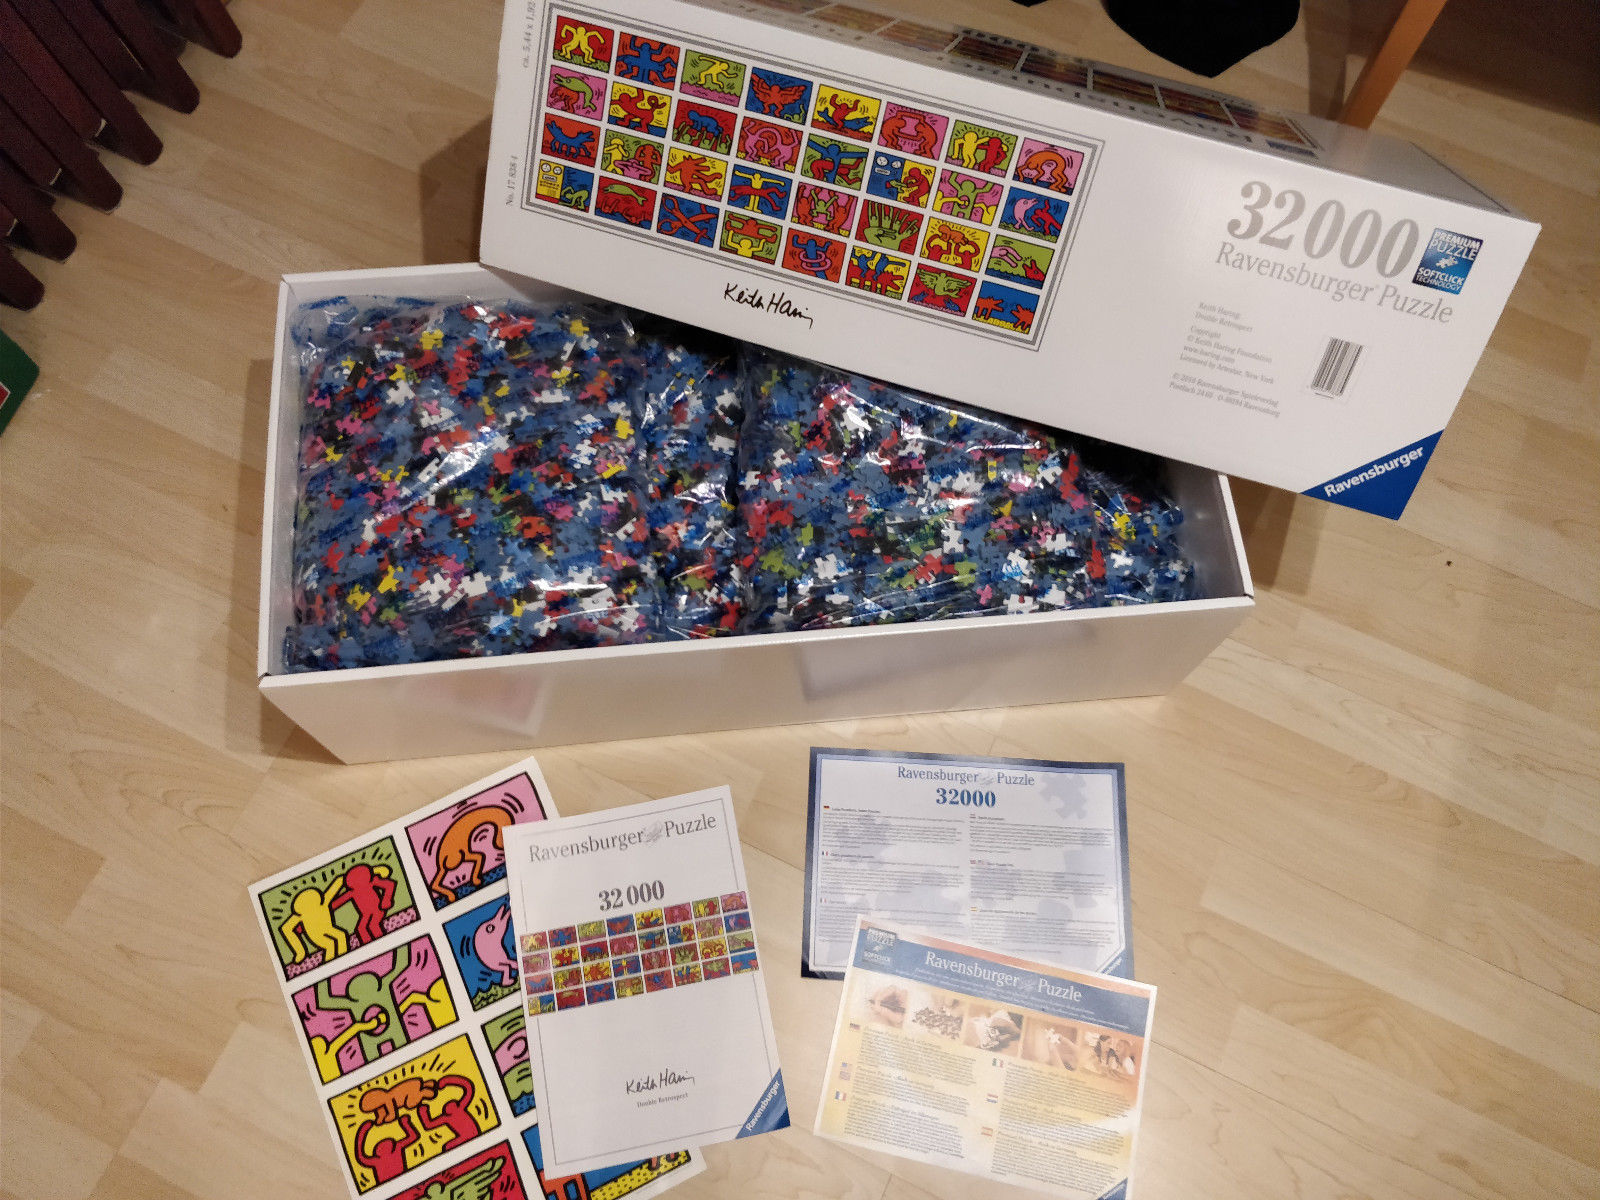 32000 Teile Ravensburger® Puzzle 17838 Keith Haring Double Retrospect 32.000